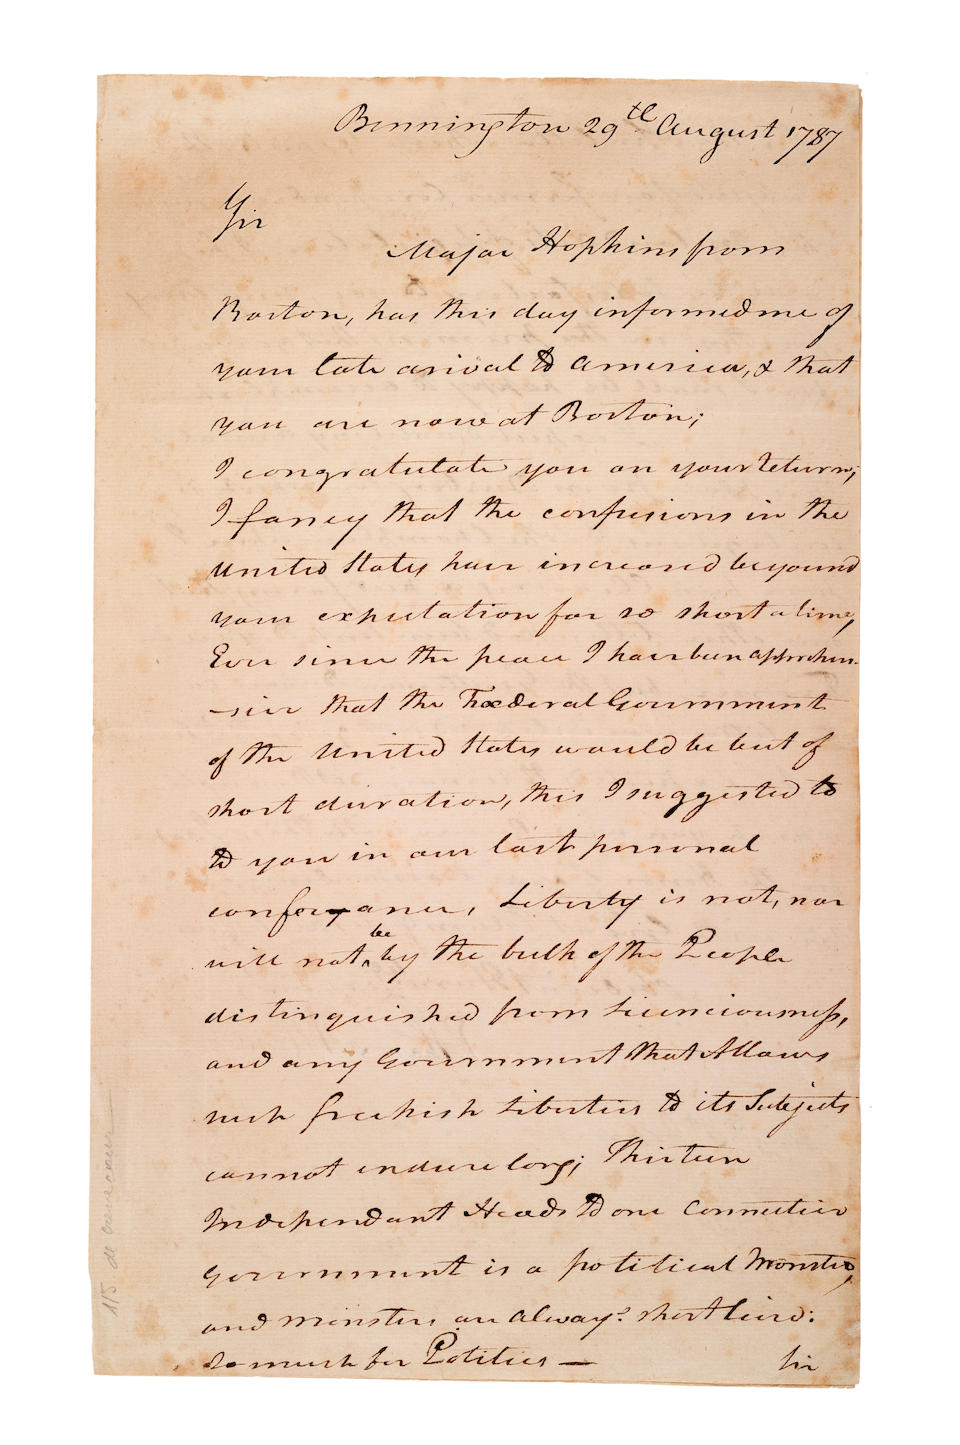 "ALLEN, ETHAN. 1738-1789. Autograph Letter Signed (""Ethan Allen"") to Hector St. John de Crevecoeur, offering astute analysis of the present state of the United States at the moment of the Constitutional Convention,"